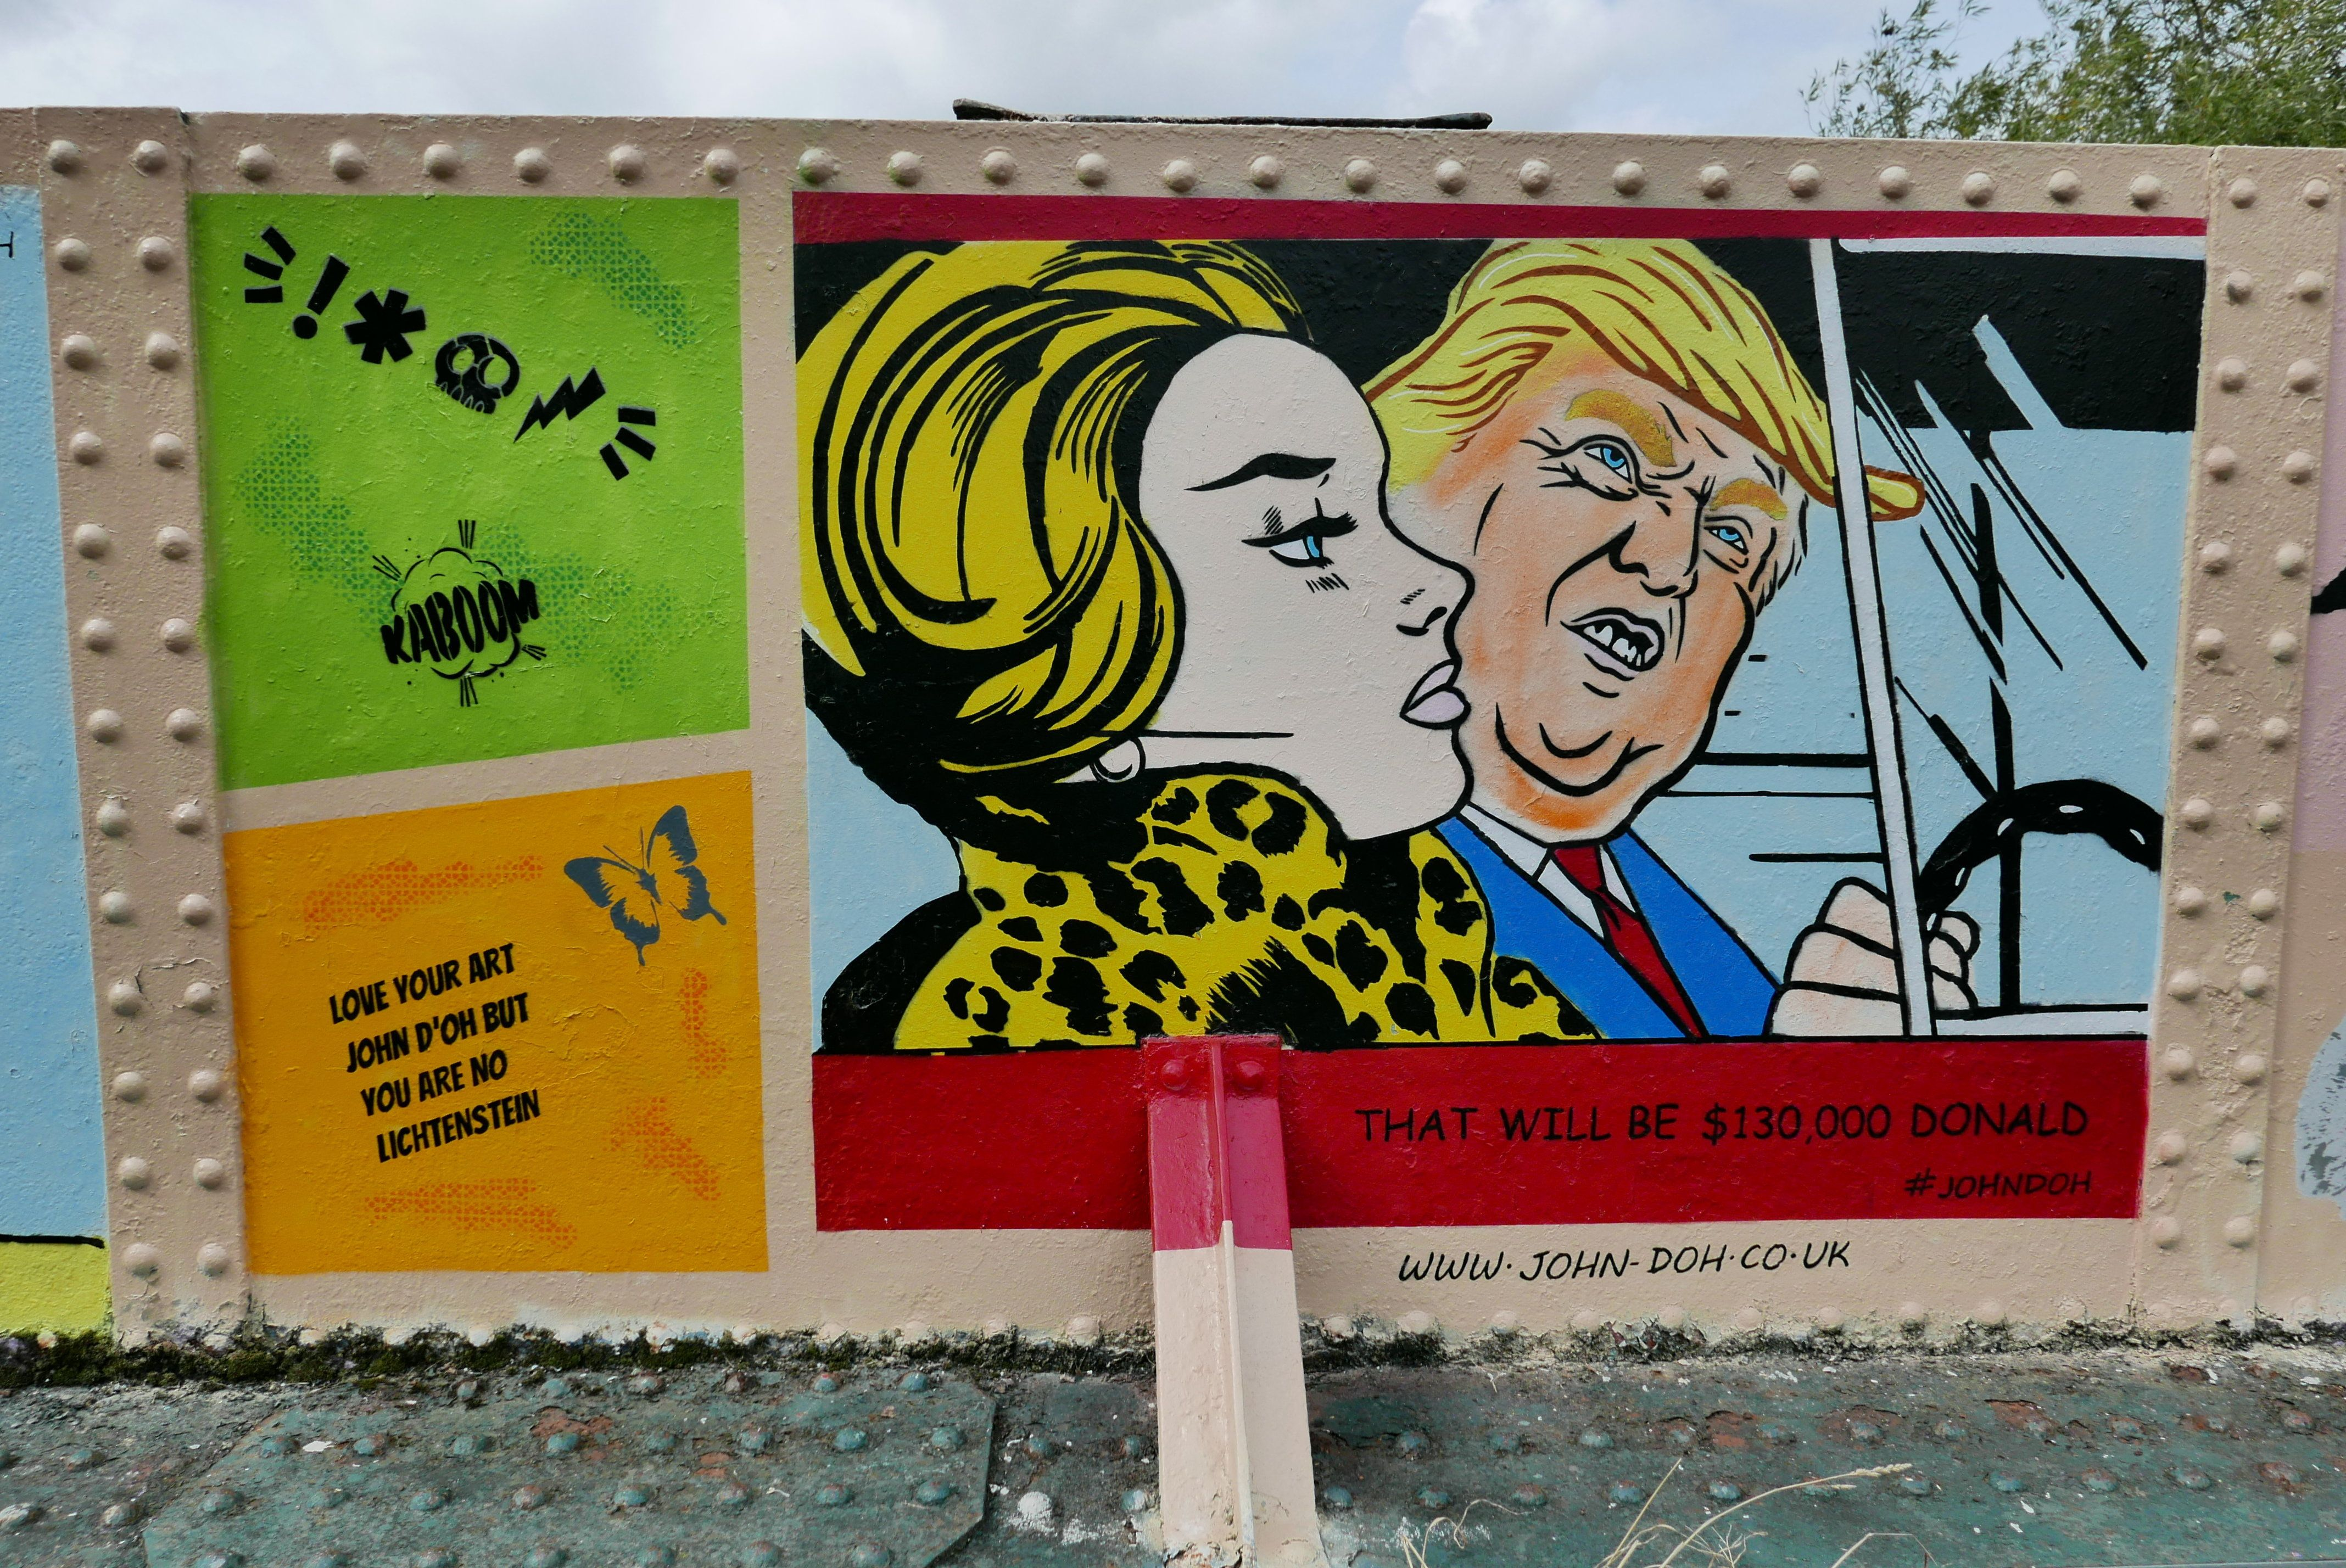 Women's Rights, Environment And Trump Are Focus Of Street Art